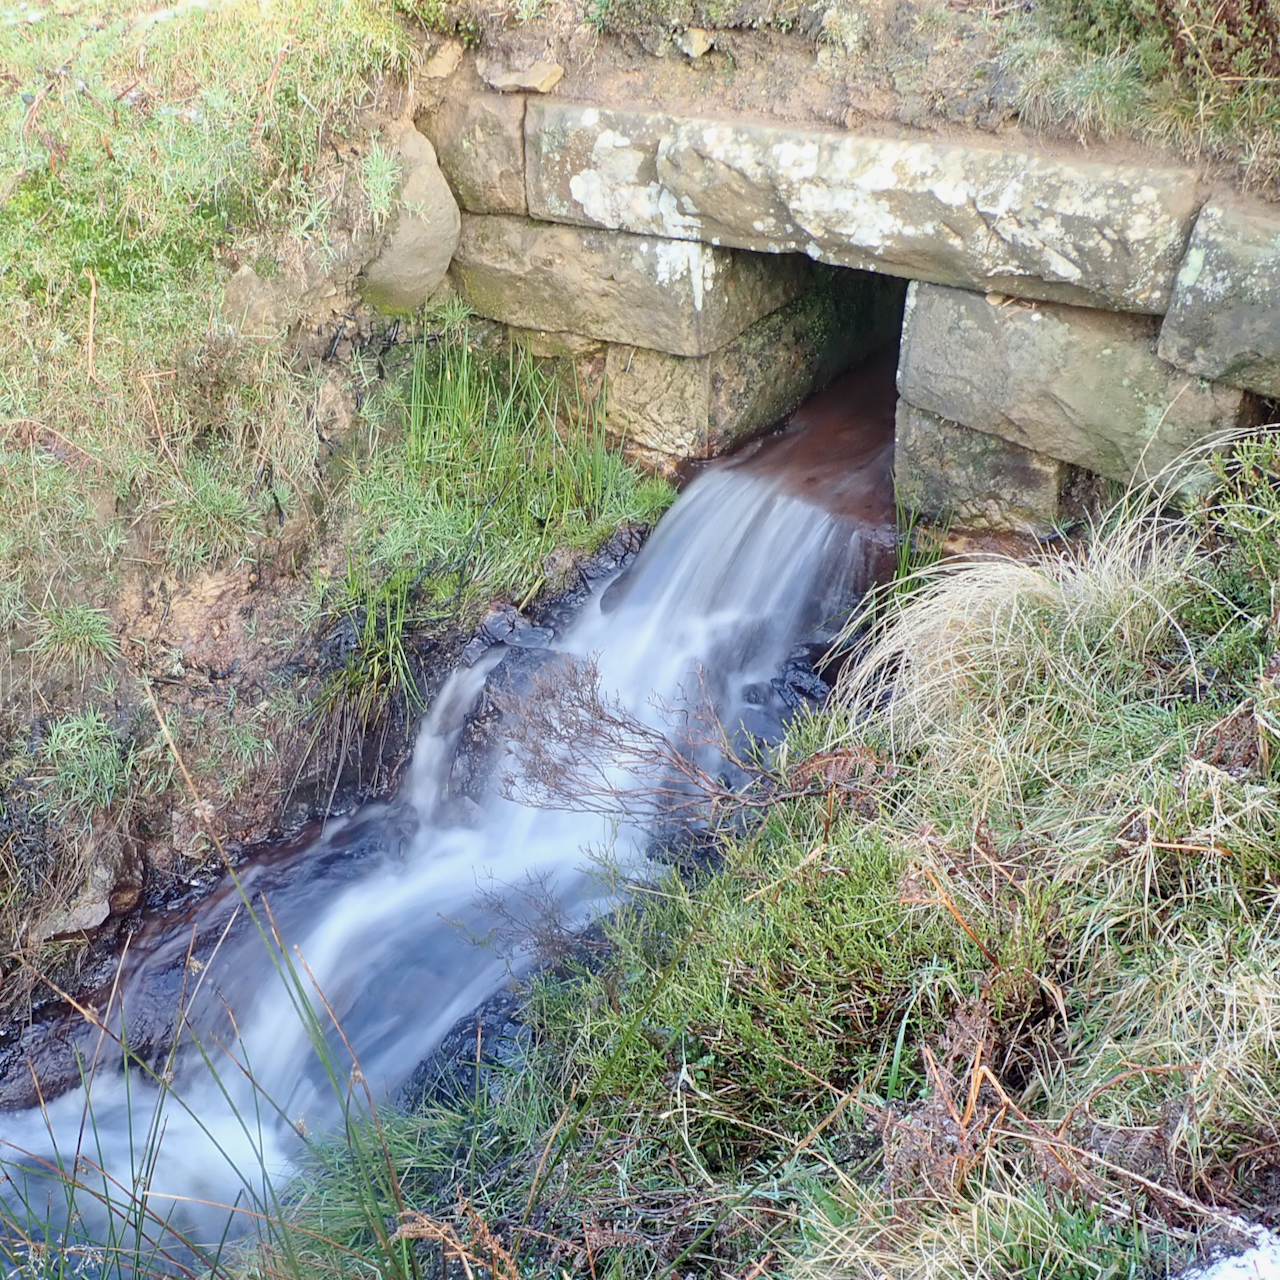 Culvert outflow